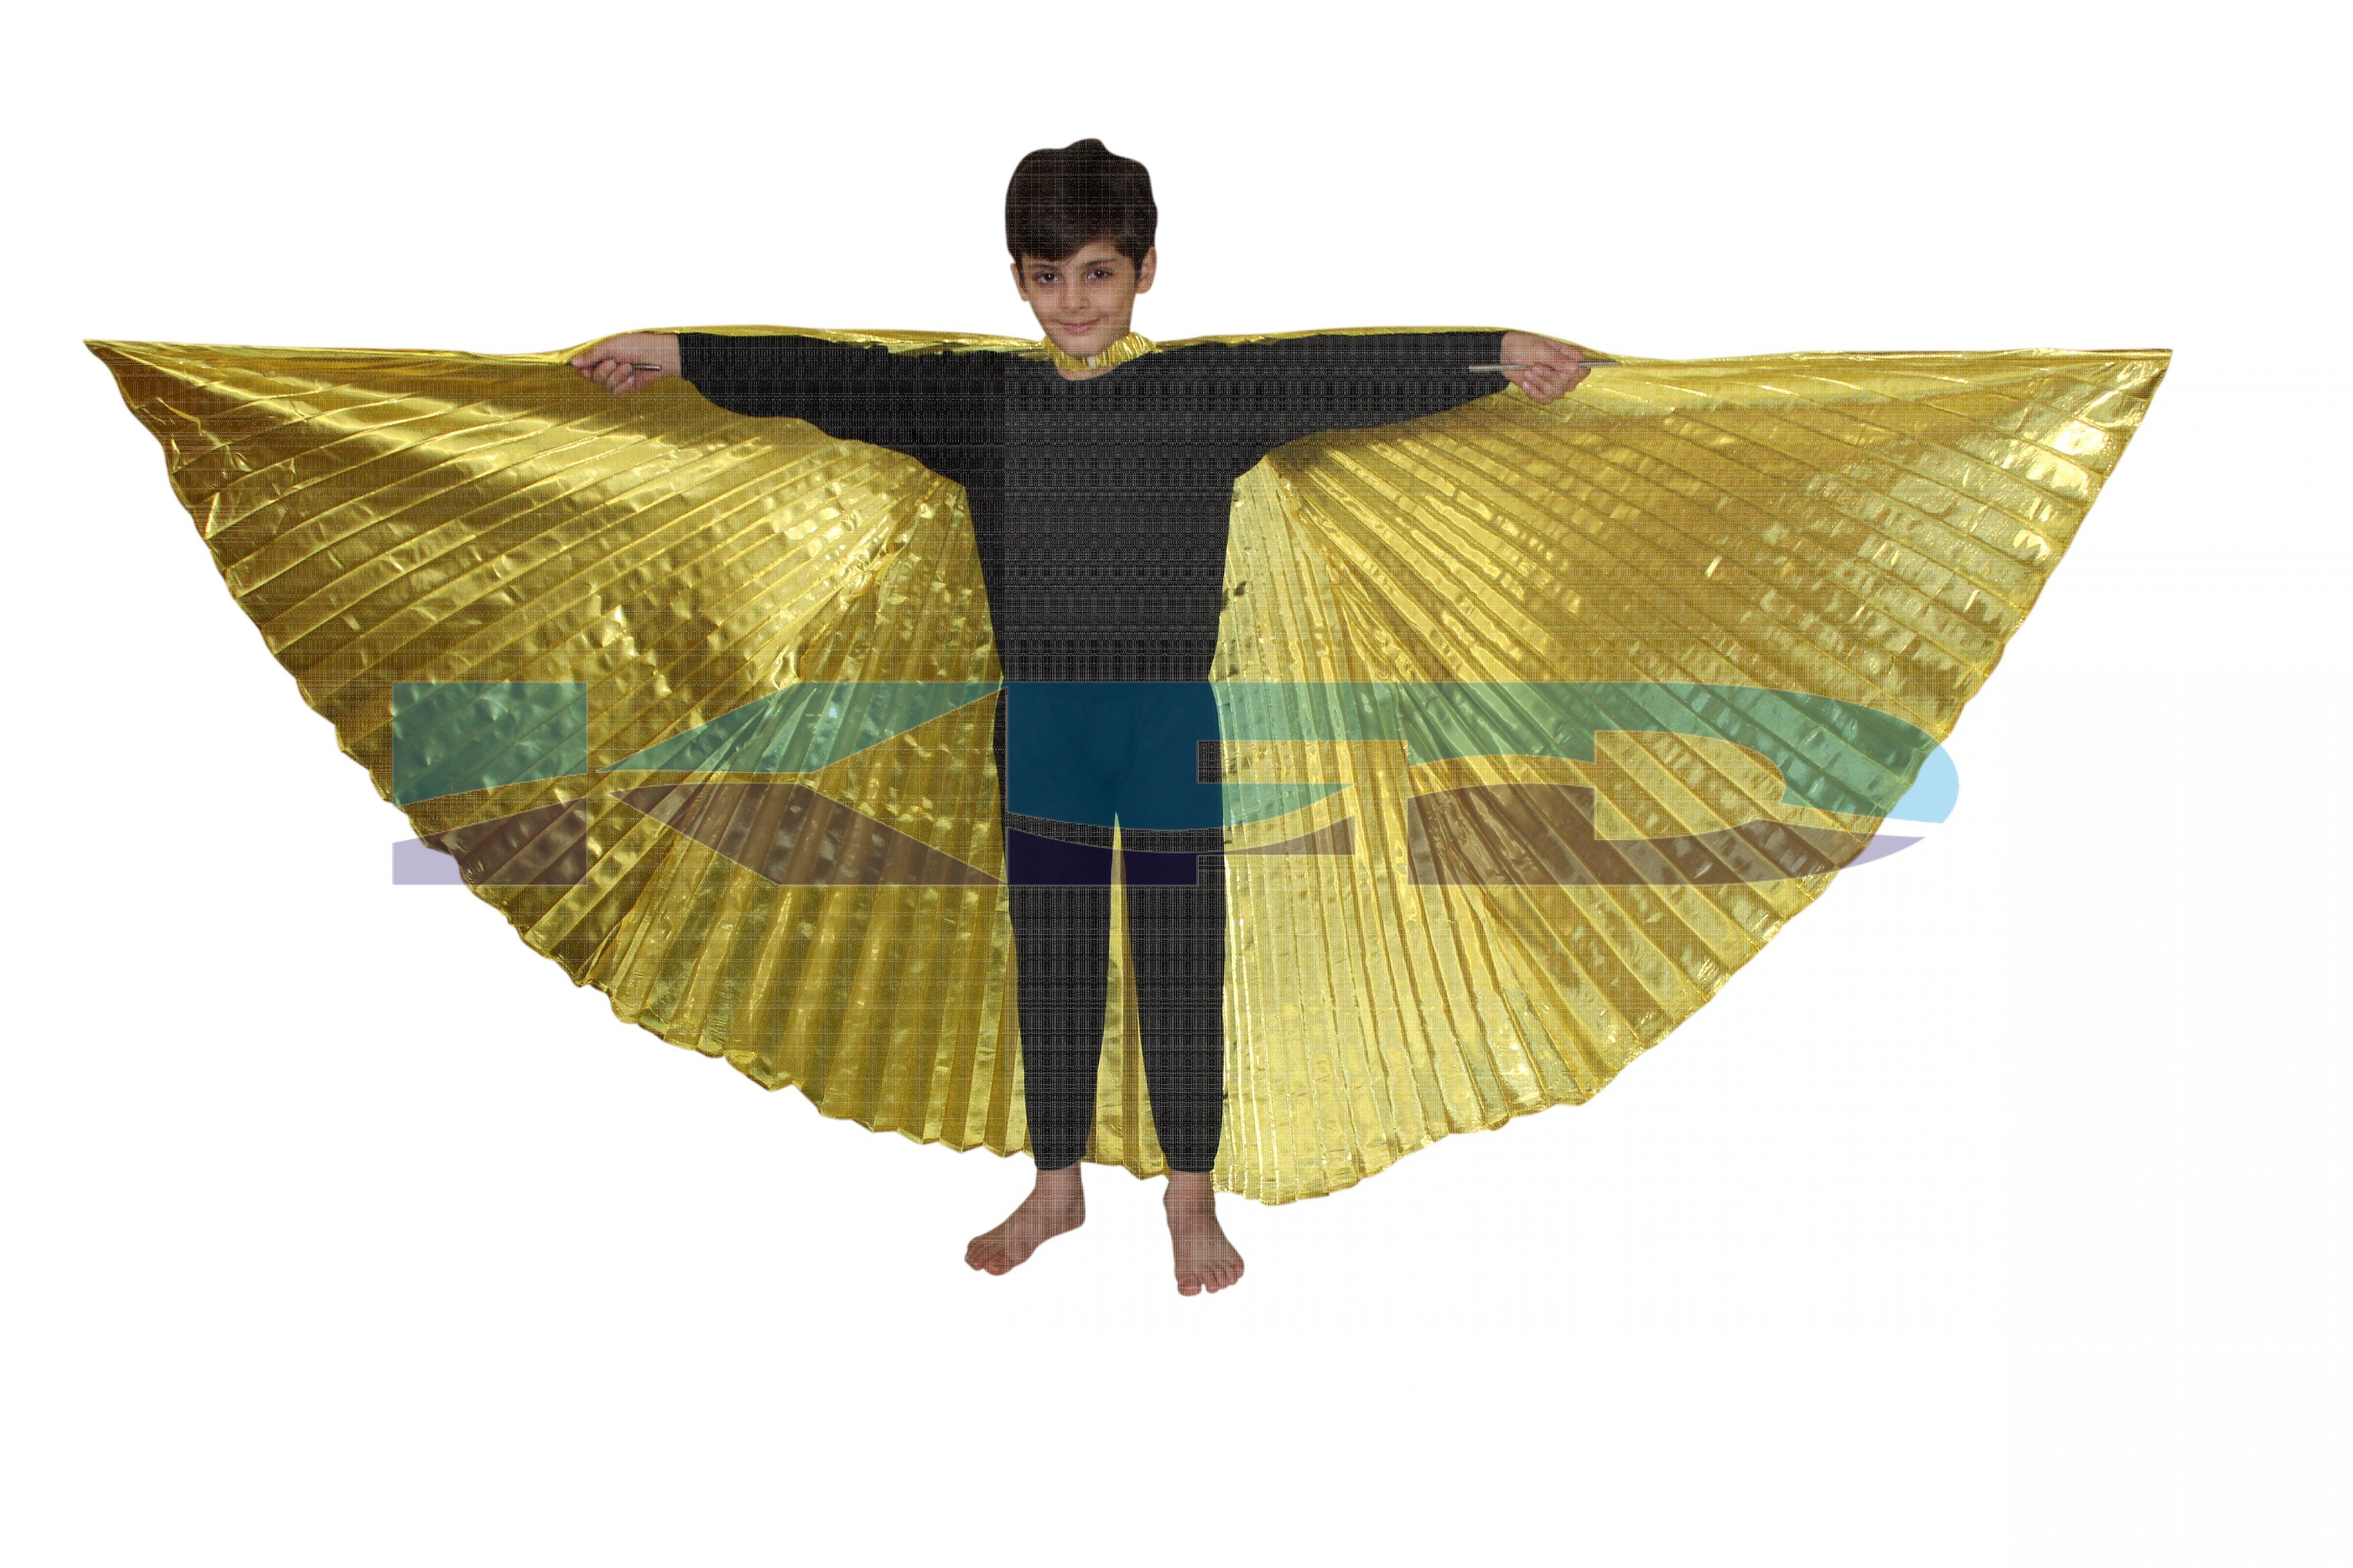 Belly Wings/Butterfly Wings/Cleopatra/Egyptian Dance Wings Full Size/CosPlay Costume For School Annual function/Theme Party/Competition/Stage Shows/Birthday Party Dress